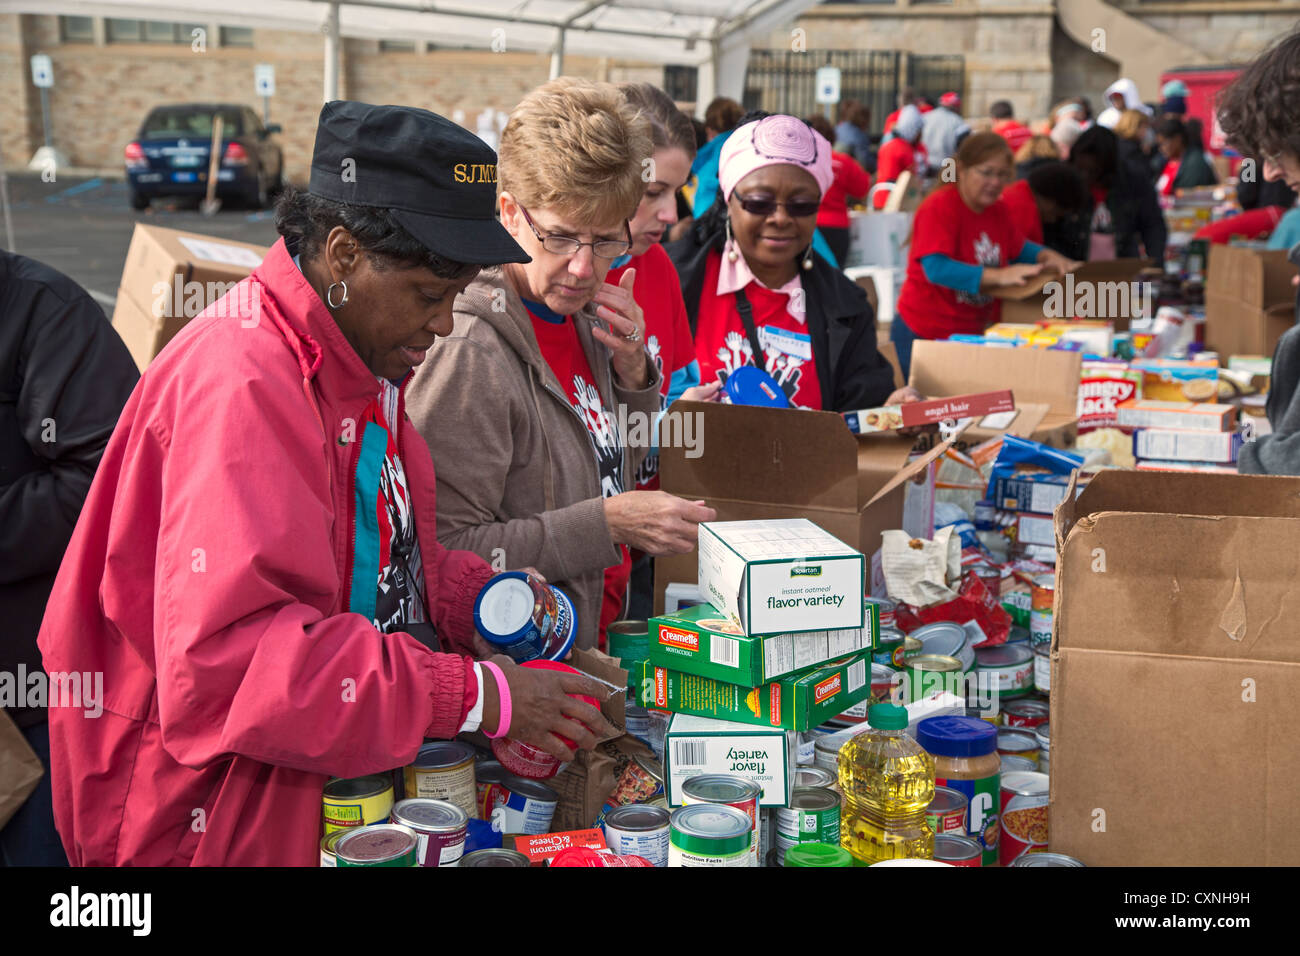 Volunteers Sort and Pack Food Donated for Food Banks and Soup Kitchens - Stock Image